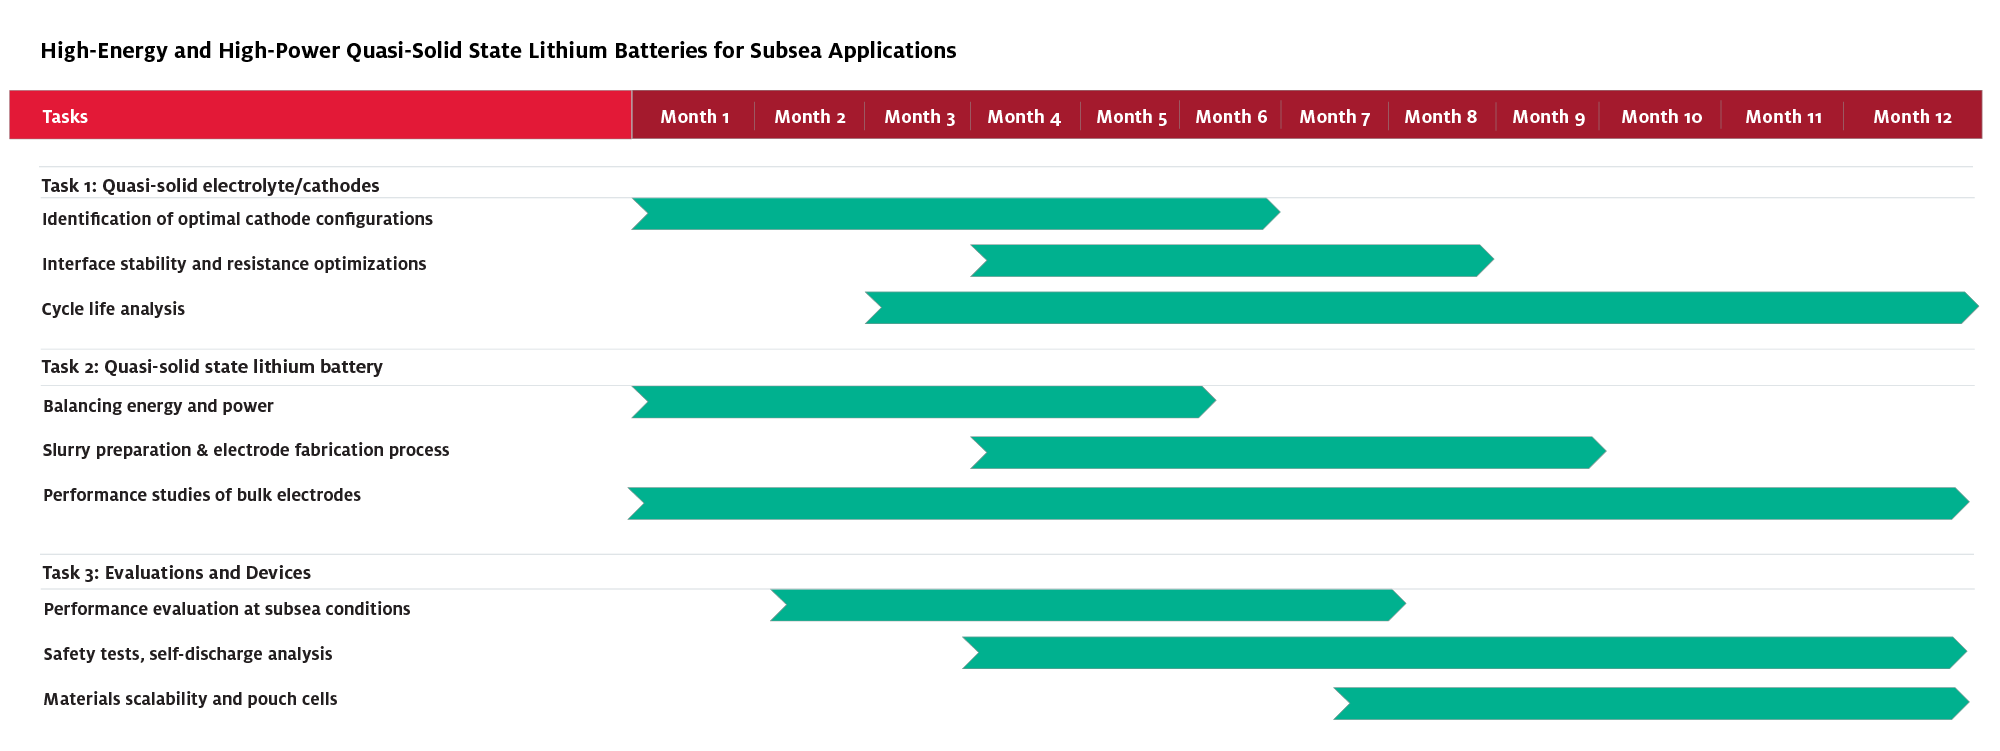 Gannt Chart - High-Energy and High-Power Quasi-Solid State Lithium Batteries for Subsea Applications